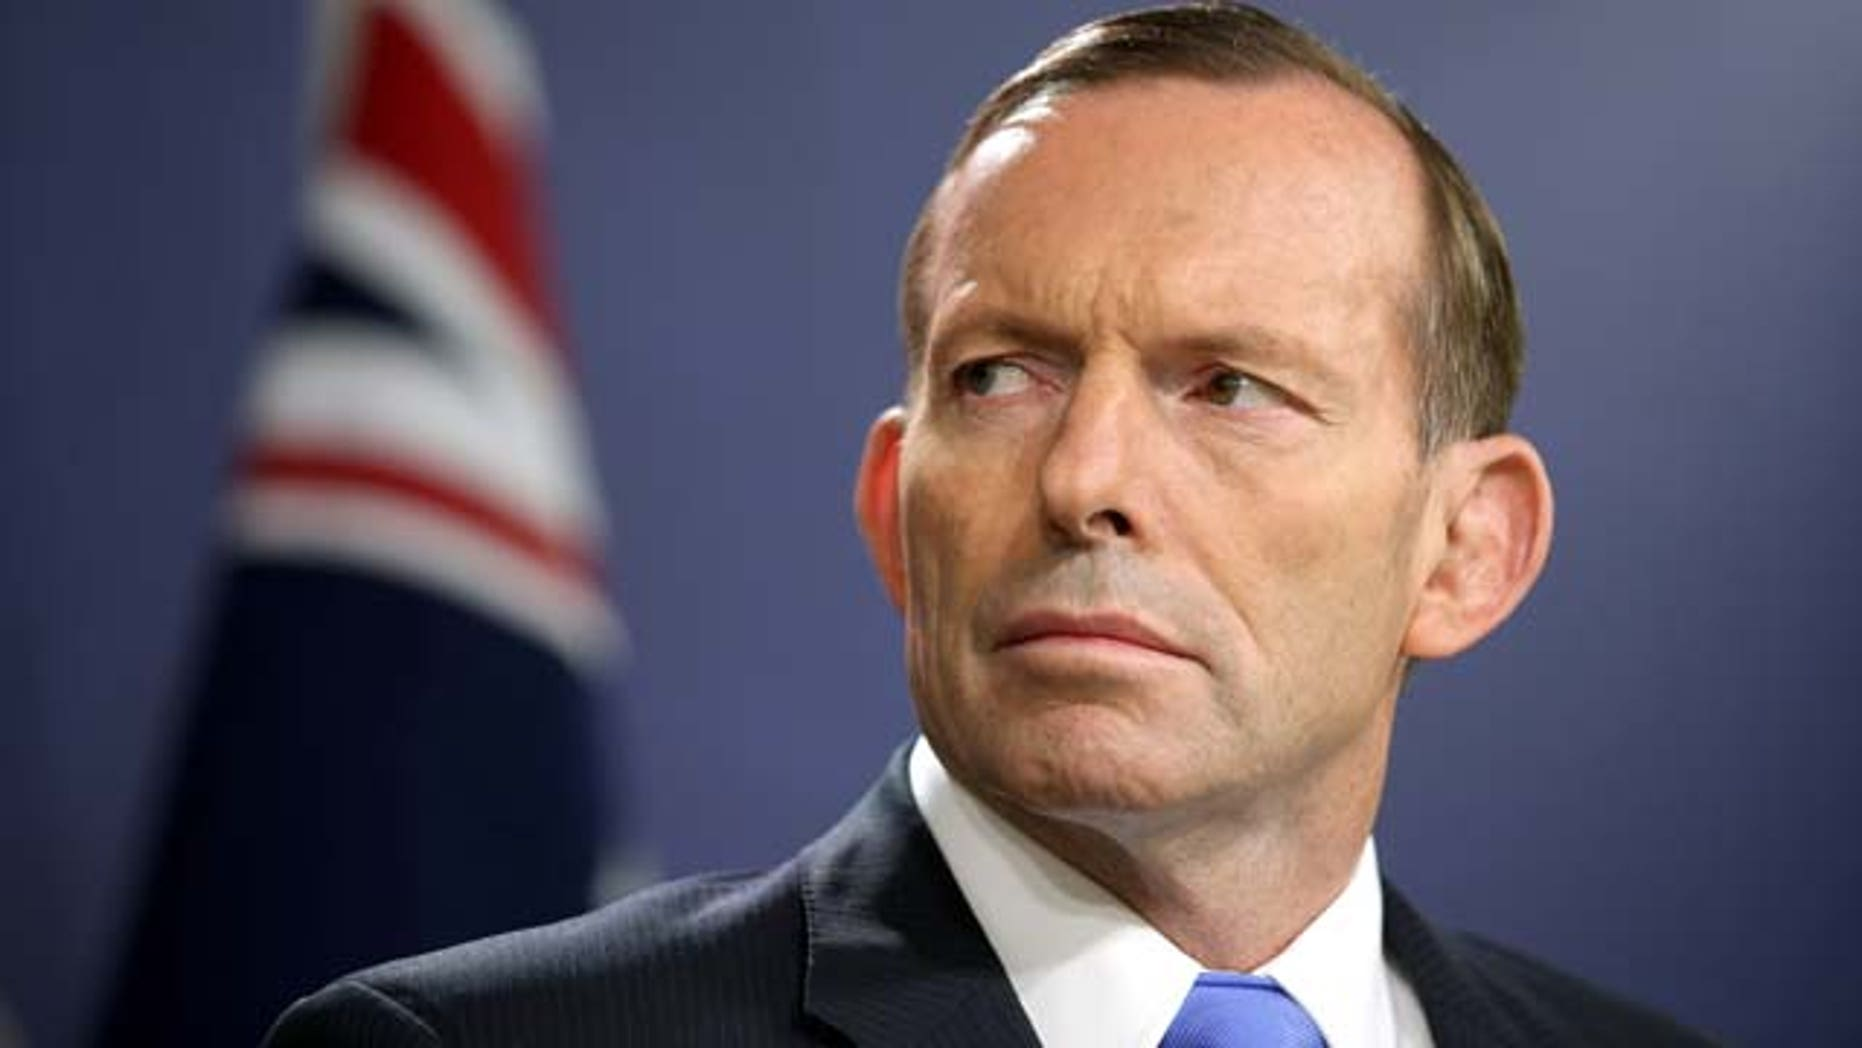 FILE - In this Sept. 19, 2014 file photo, Australian Prime Minister Tony Abbott speaks during a press conference, in Sydney.  (AP Photo/Rick Rycroft, File)